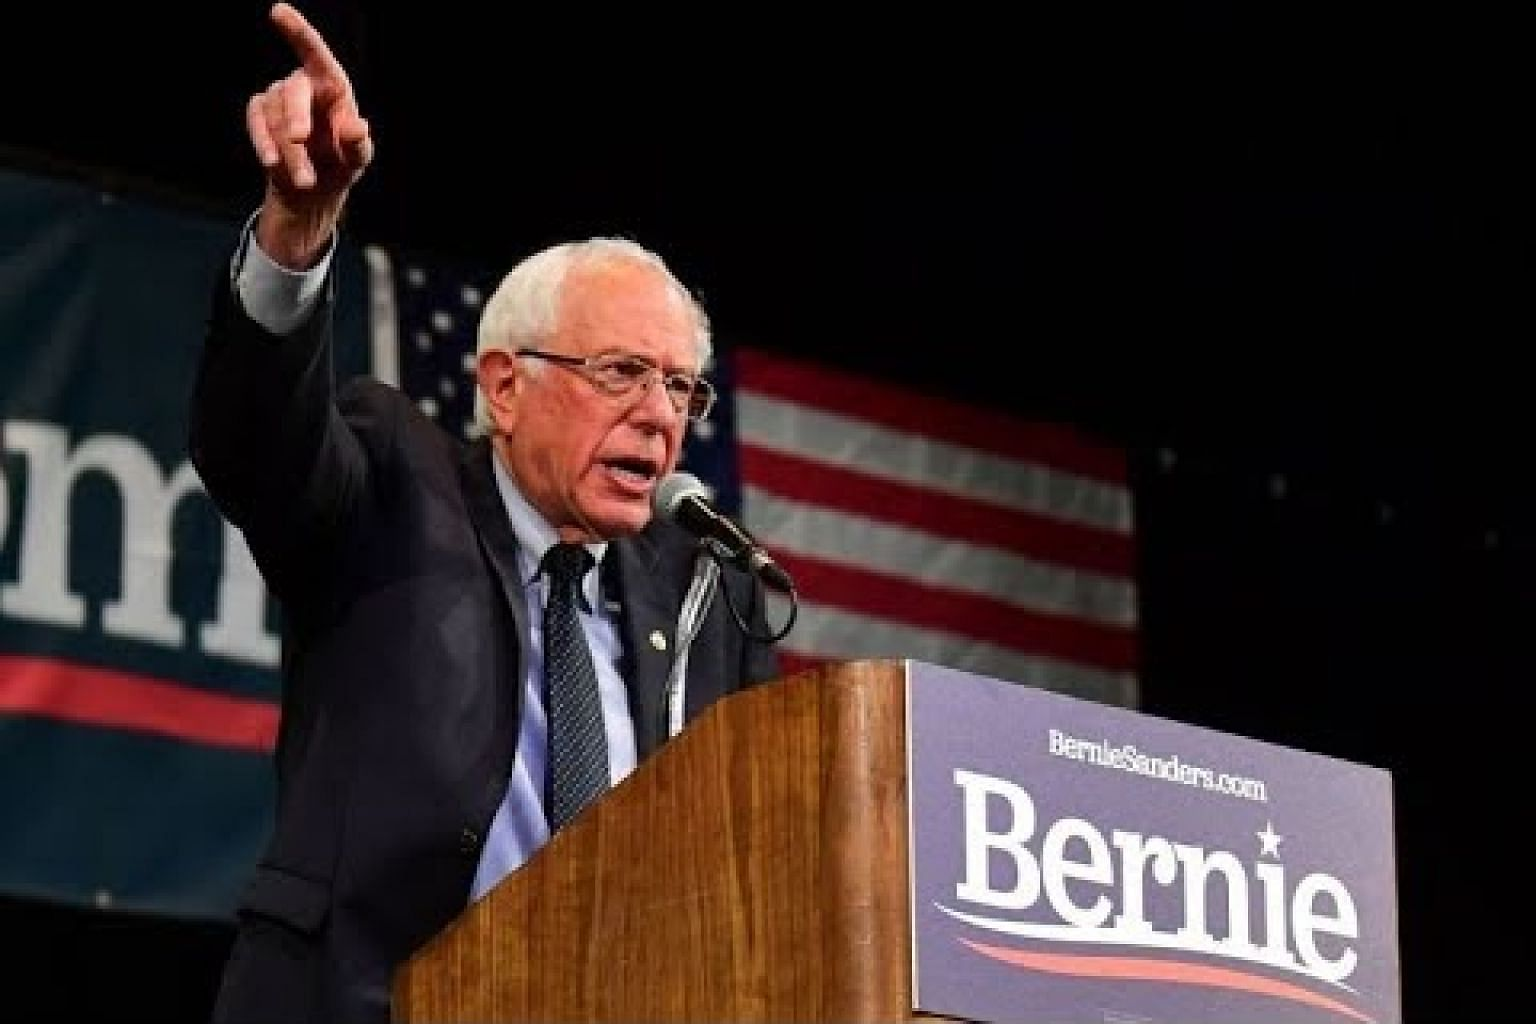 Sanders undergoes surgery, canceling campaign events